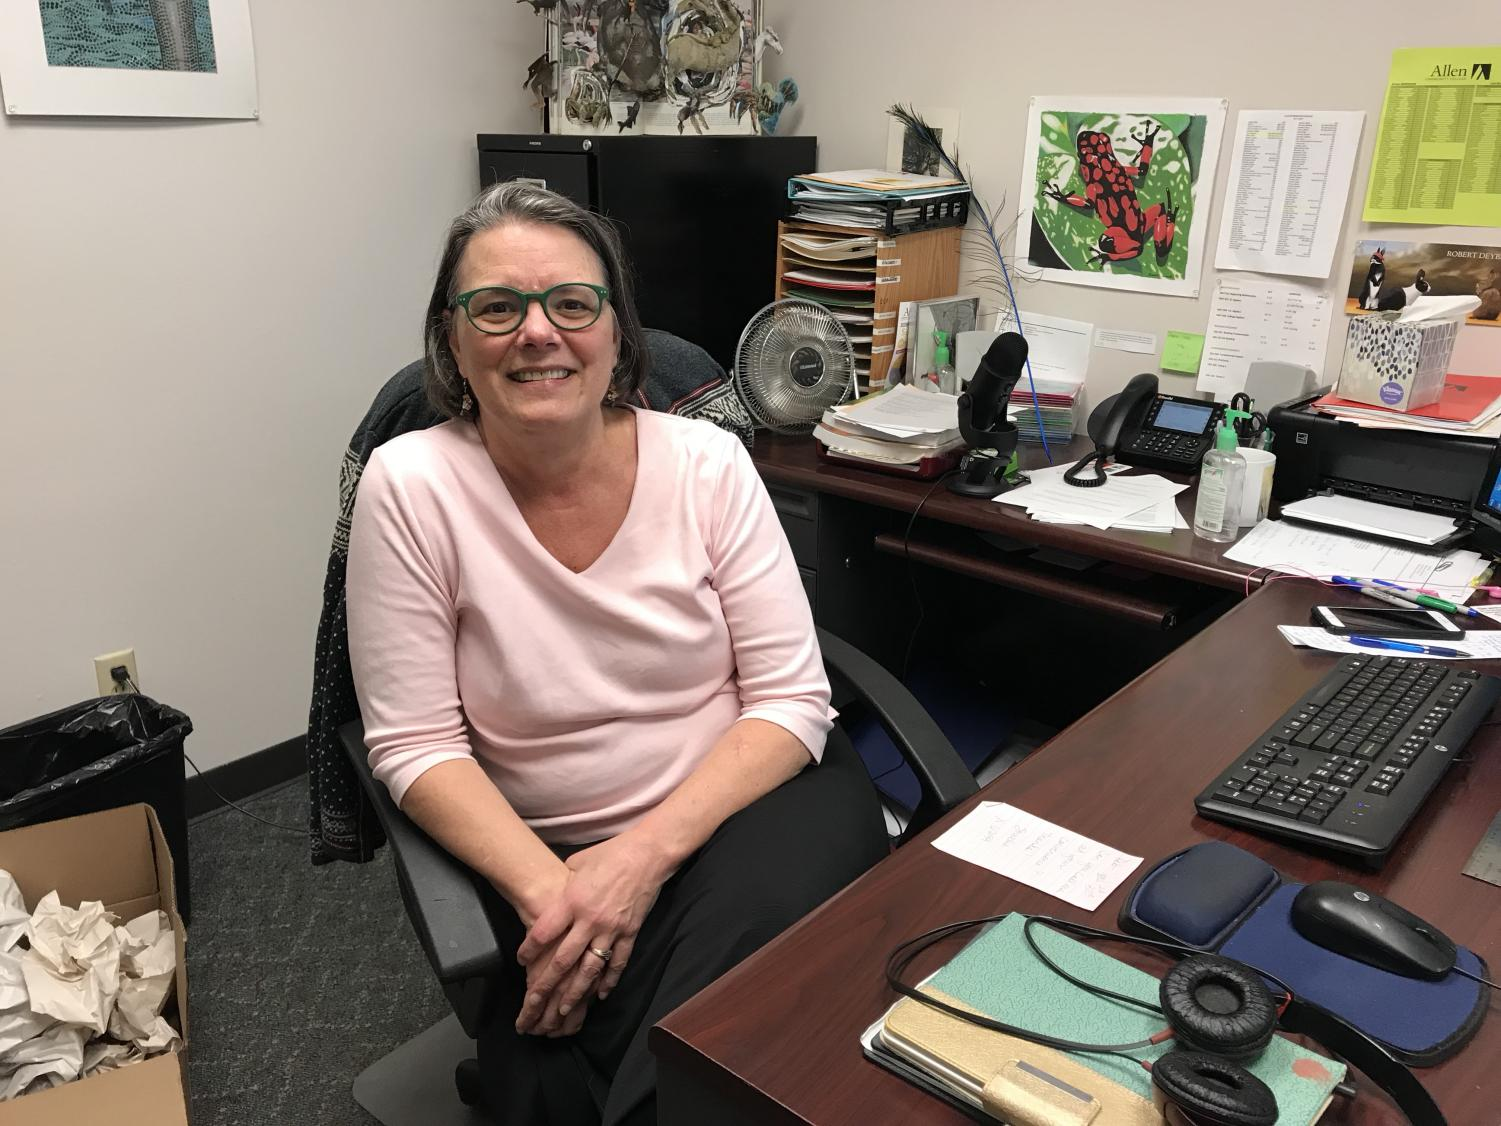 Deb Erikson, who is completing her last year of teaching at Allen, manages her online biology courses.